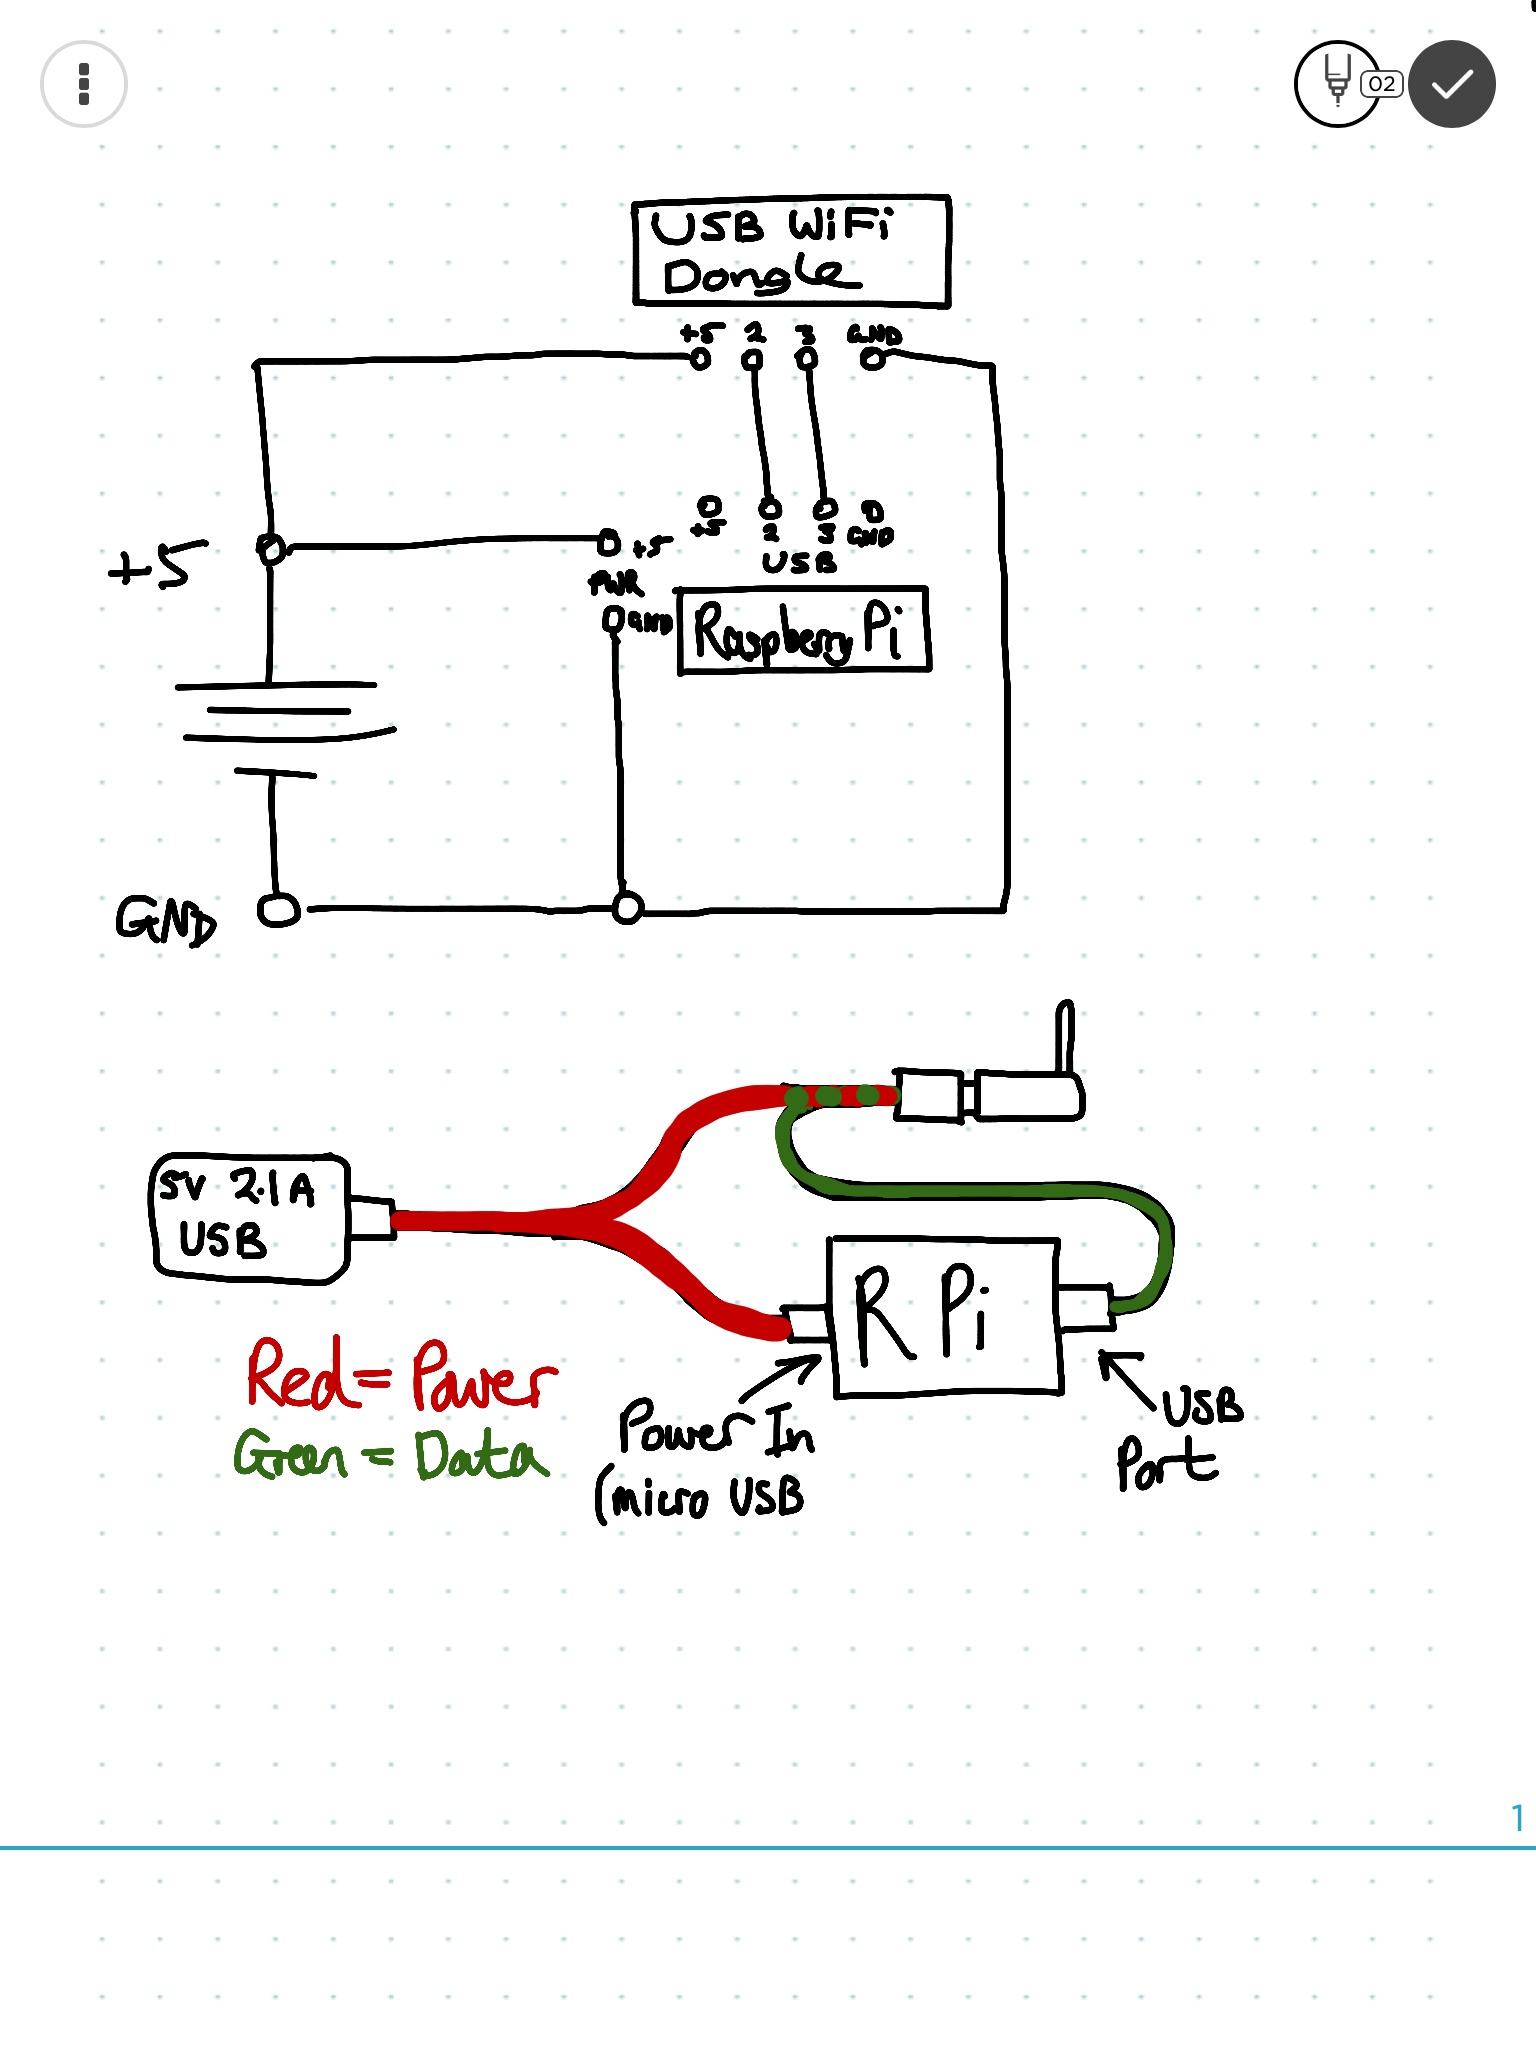 Wiring Usb Hack | Wiring Diagram - Wiring Diagram For Usb Charger To Car Harness